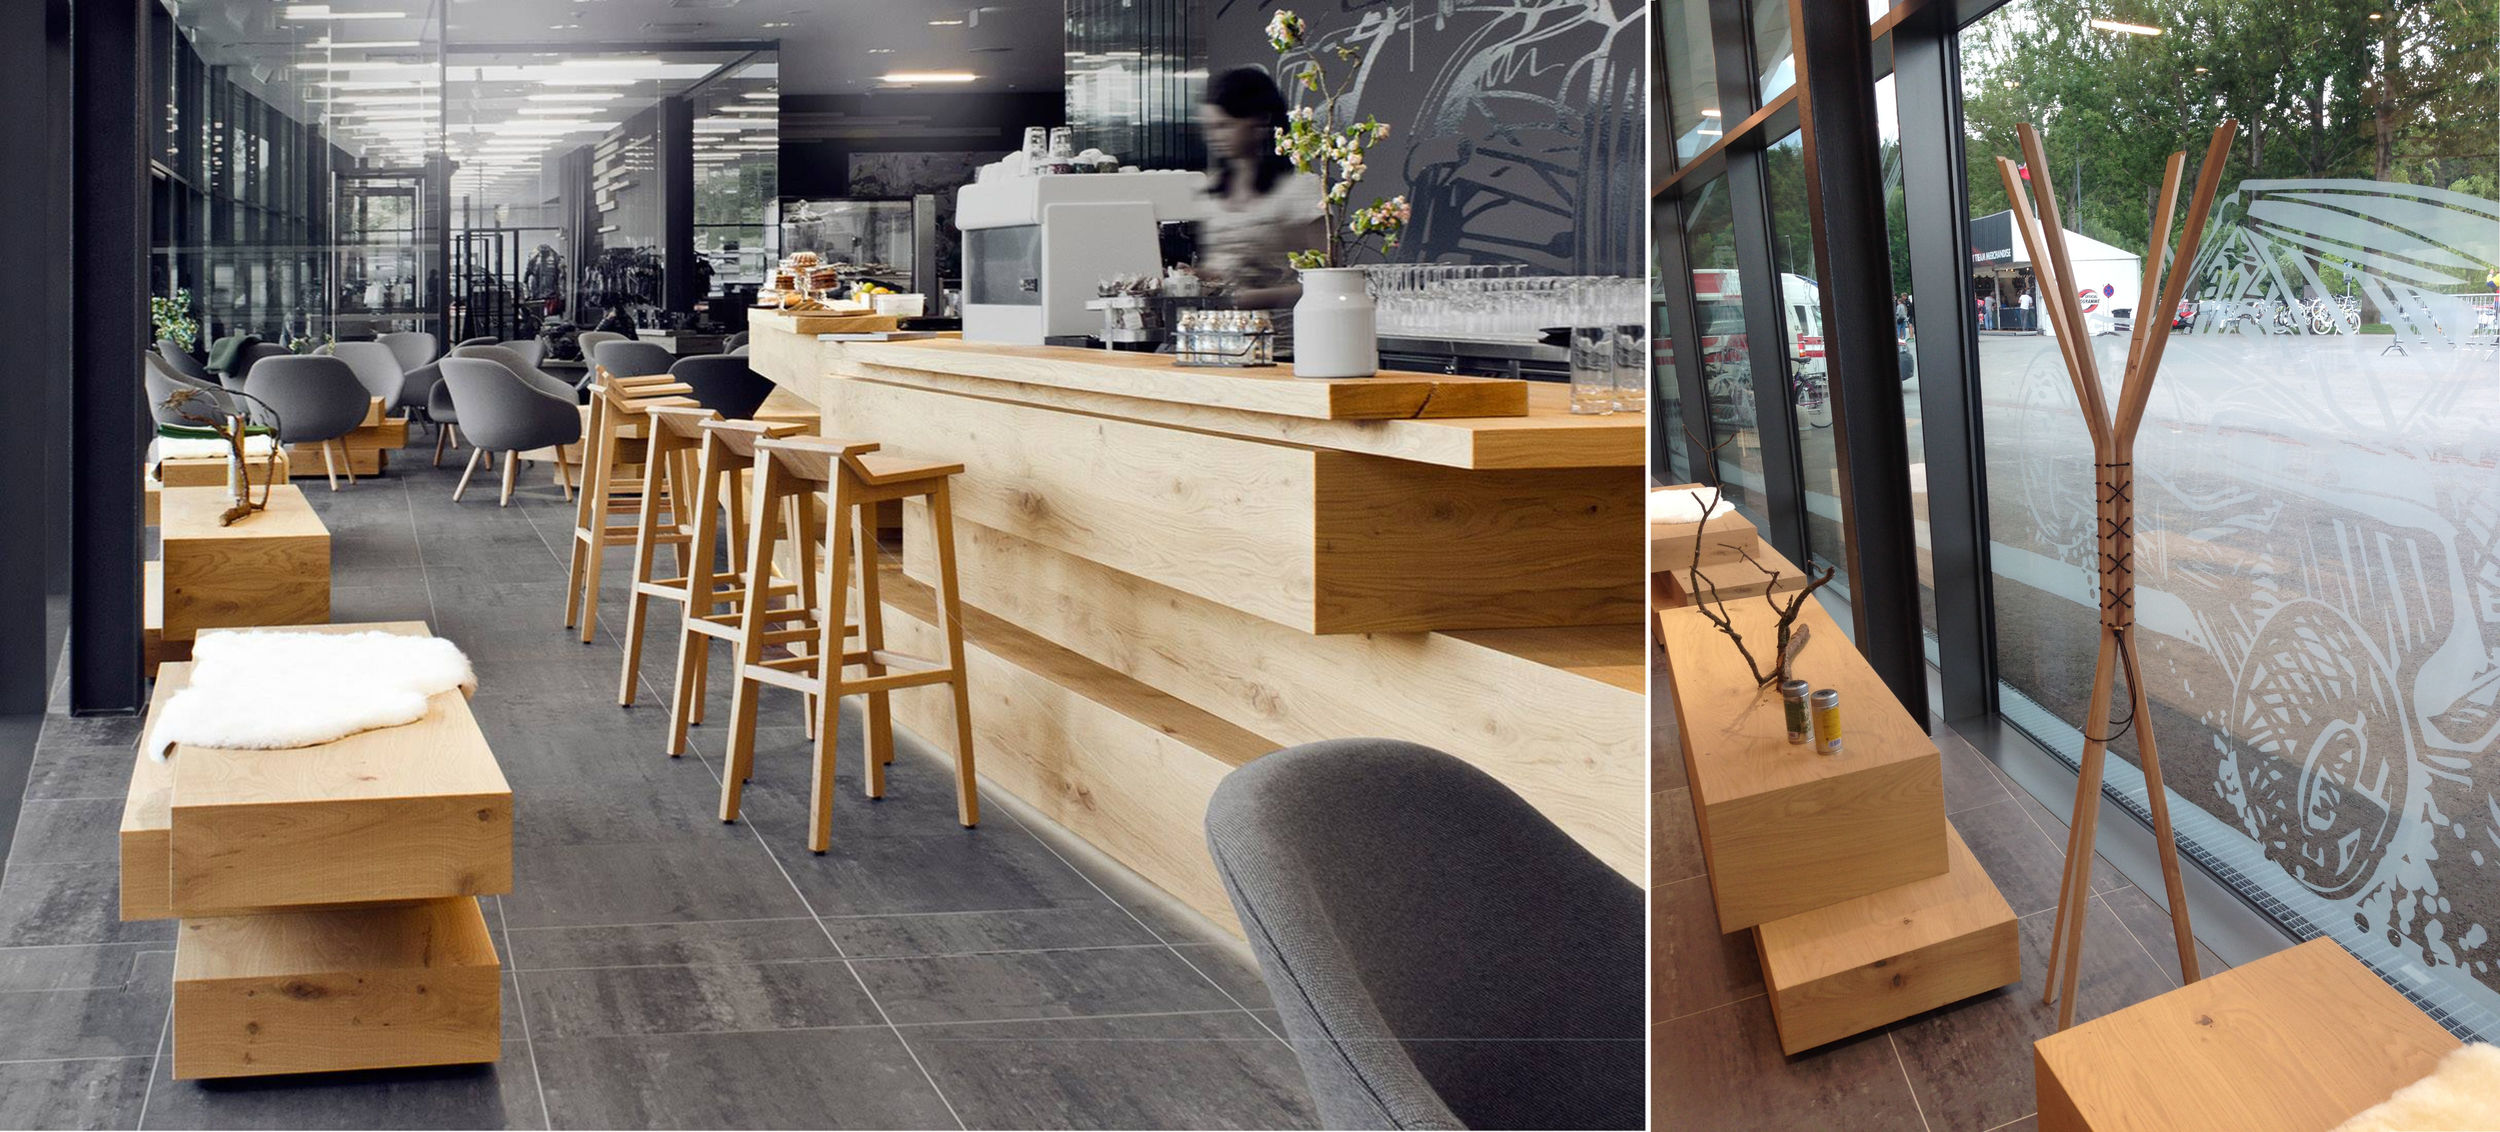 RIEBENBAUER DESIGN  STUDIO IN WIEN has developped the  RED BULL'S WELCOME CENTER , including the cafe. The concept of project was to use the  natural solid wood in its purer state  and of course  CANCAN  coat stand from  WEWOOD  was one of the pieces selected to be part of this project.